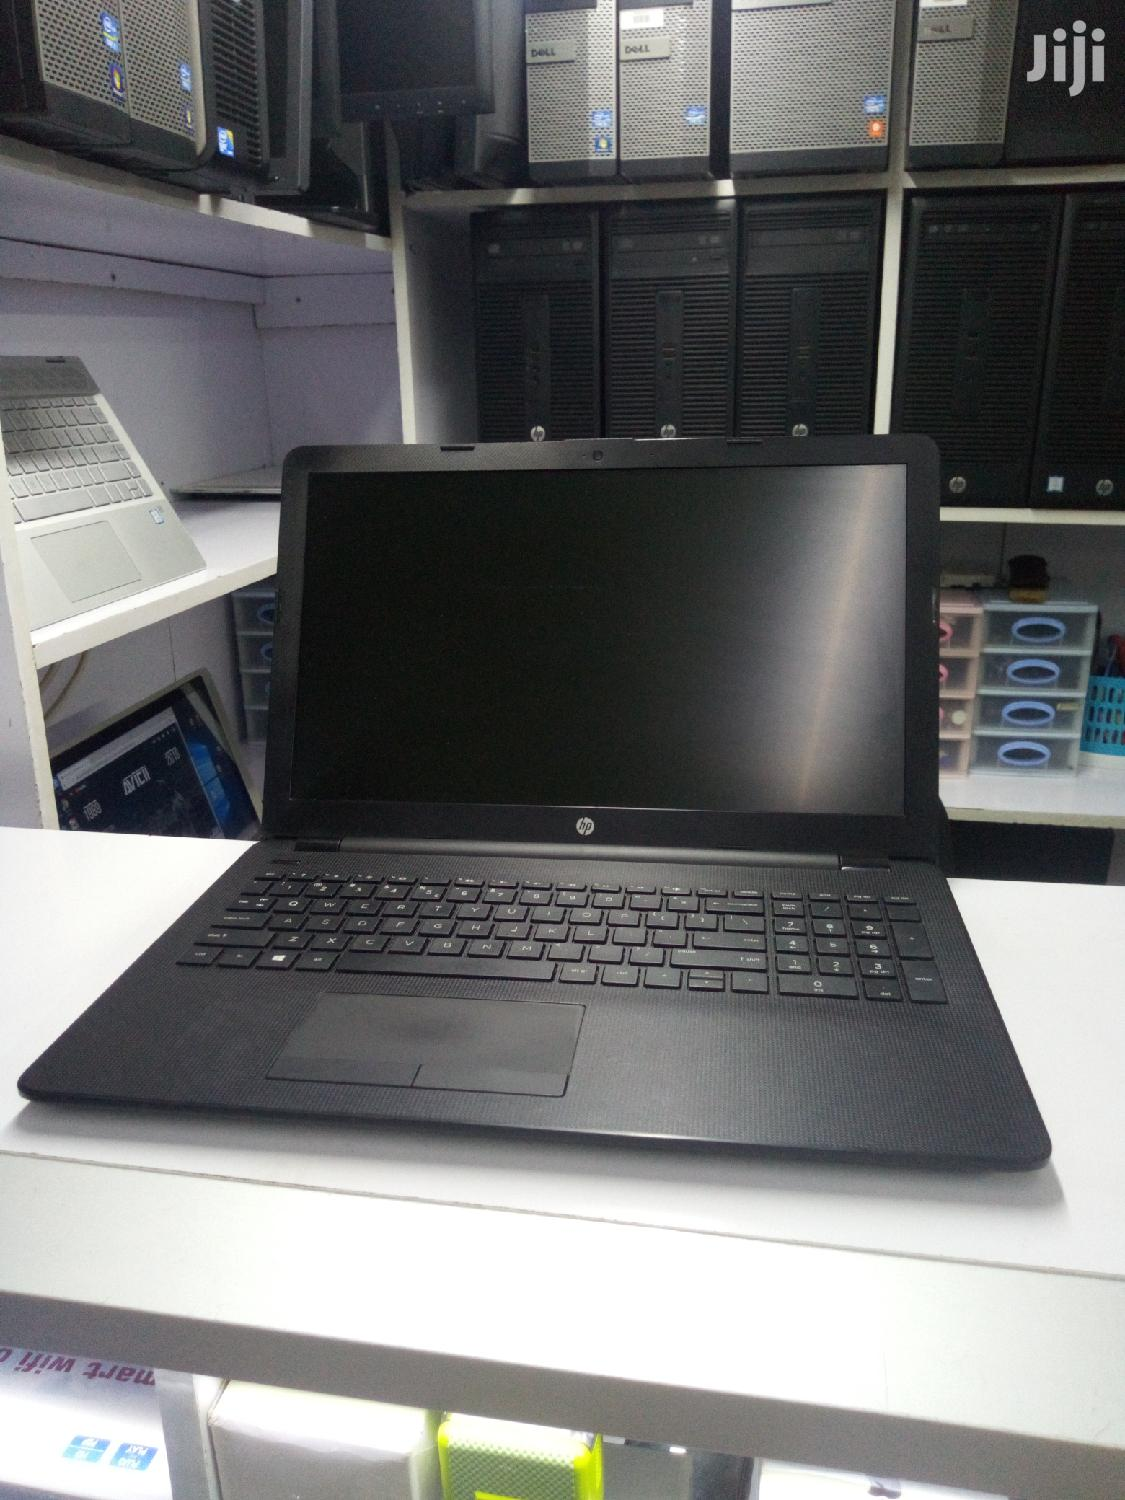 Laptop HP 250 G6 4GB Intel Pentium HDD 500GB | Laptops & Computers for sale in Nairobi Central, Nairobi, Kenya